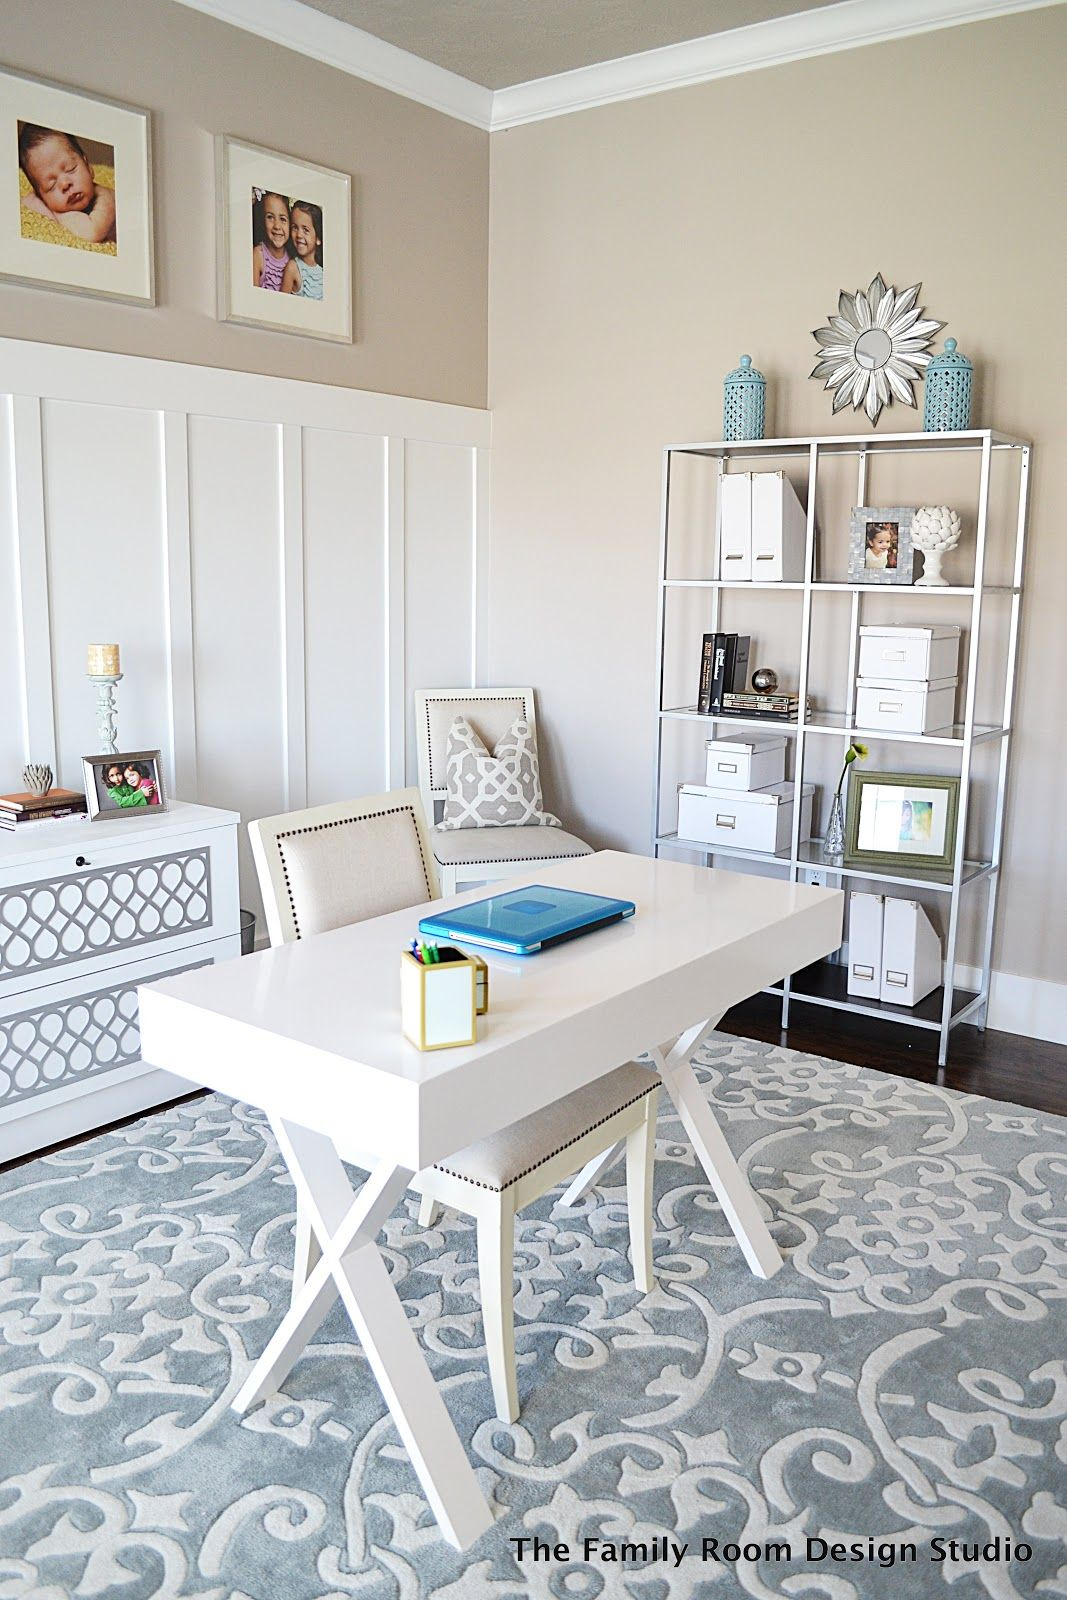 workspace picturesque ikea home office decor inspiration. Hand-tufted Contemporary Area Rug By Surya From The Cosmopolitan Collection Grounds This Light And Airy Workspace. Workspace Picturesque Ikea Home Office Decor Inspiration